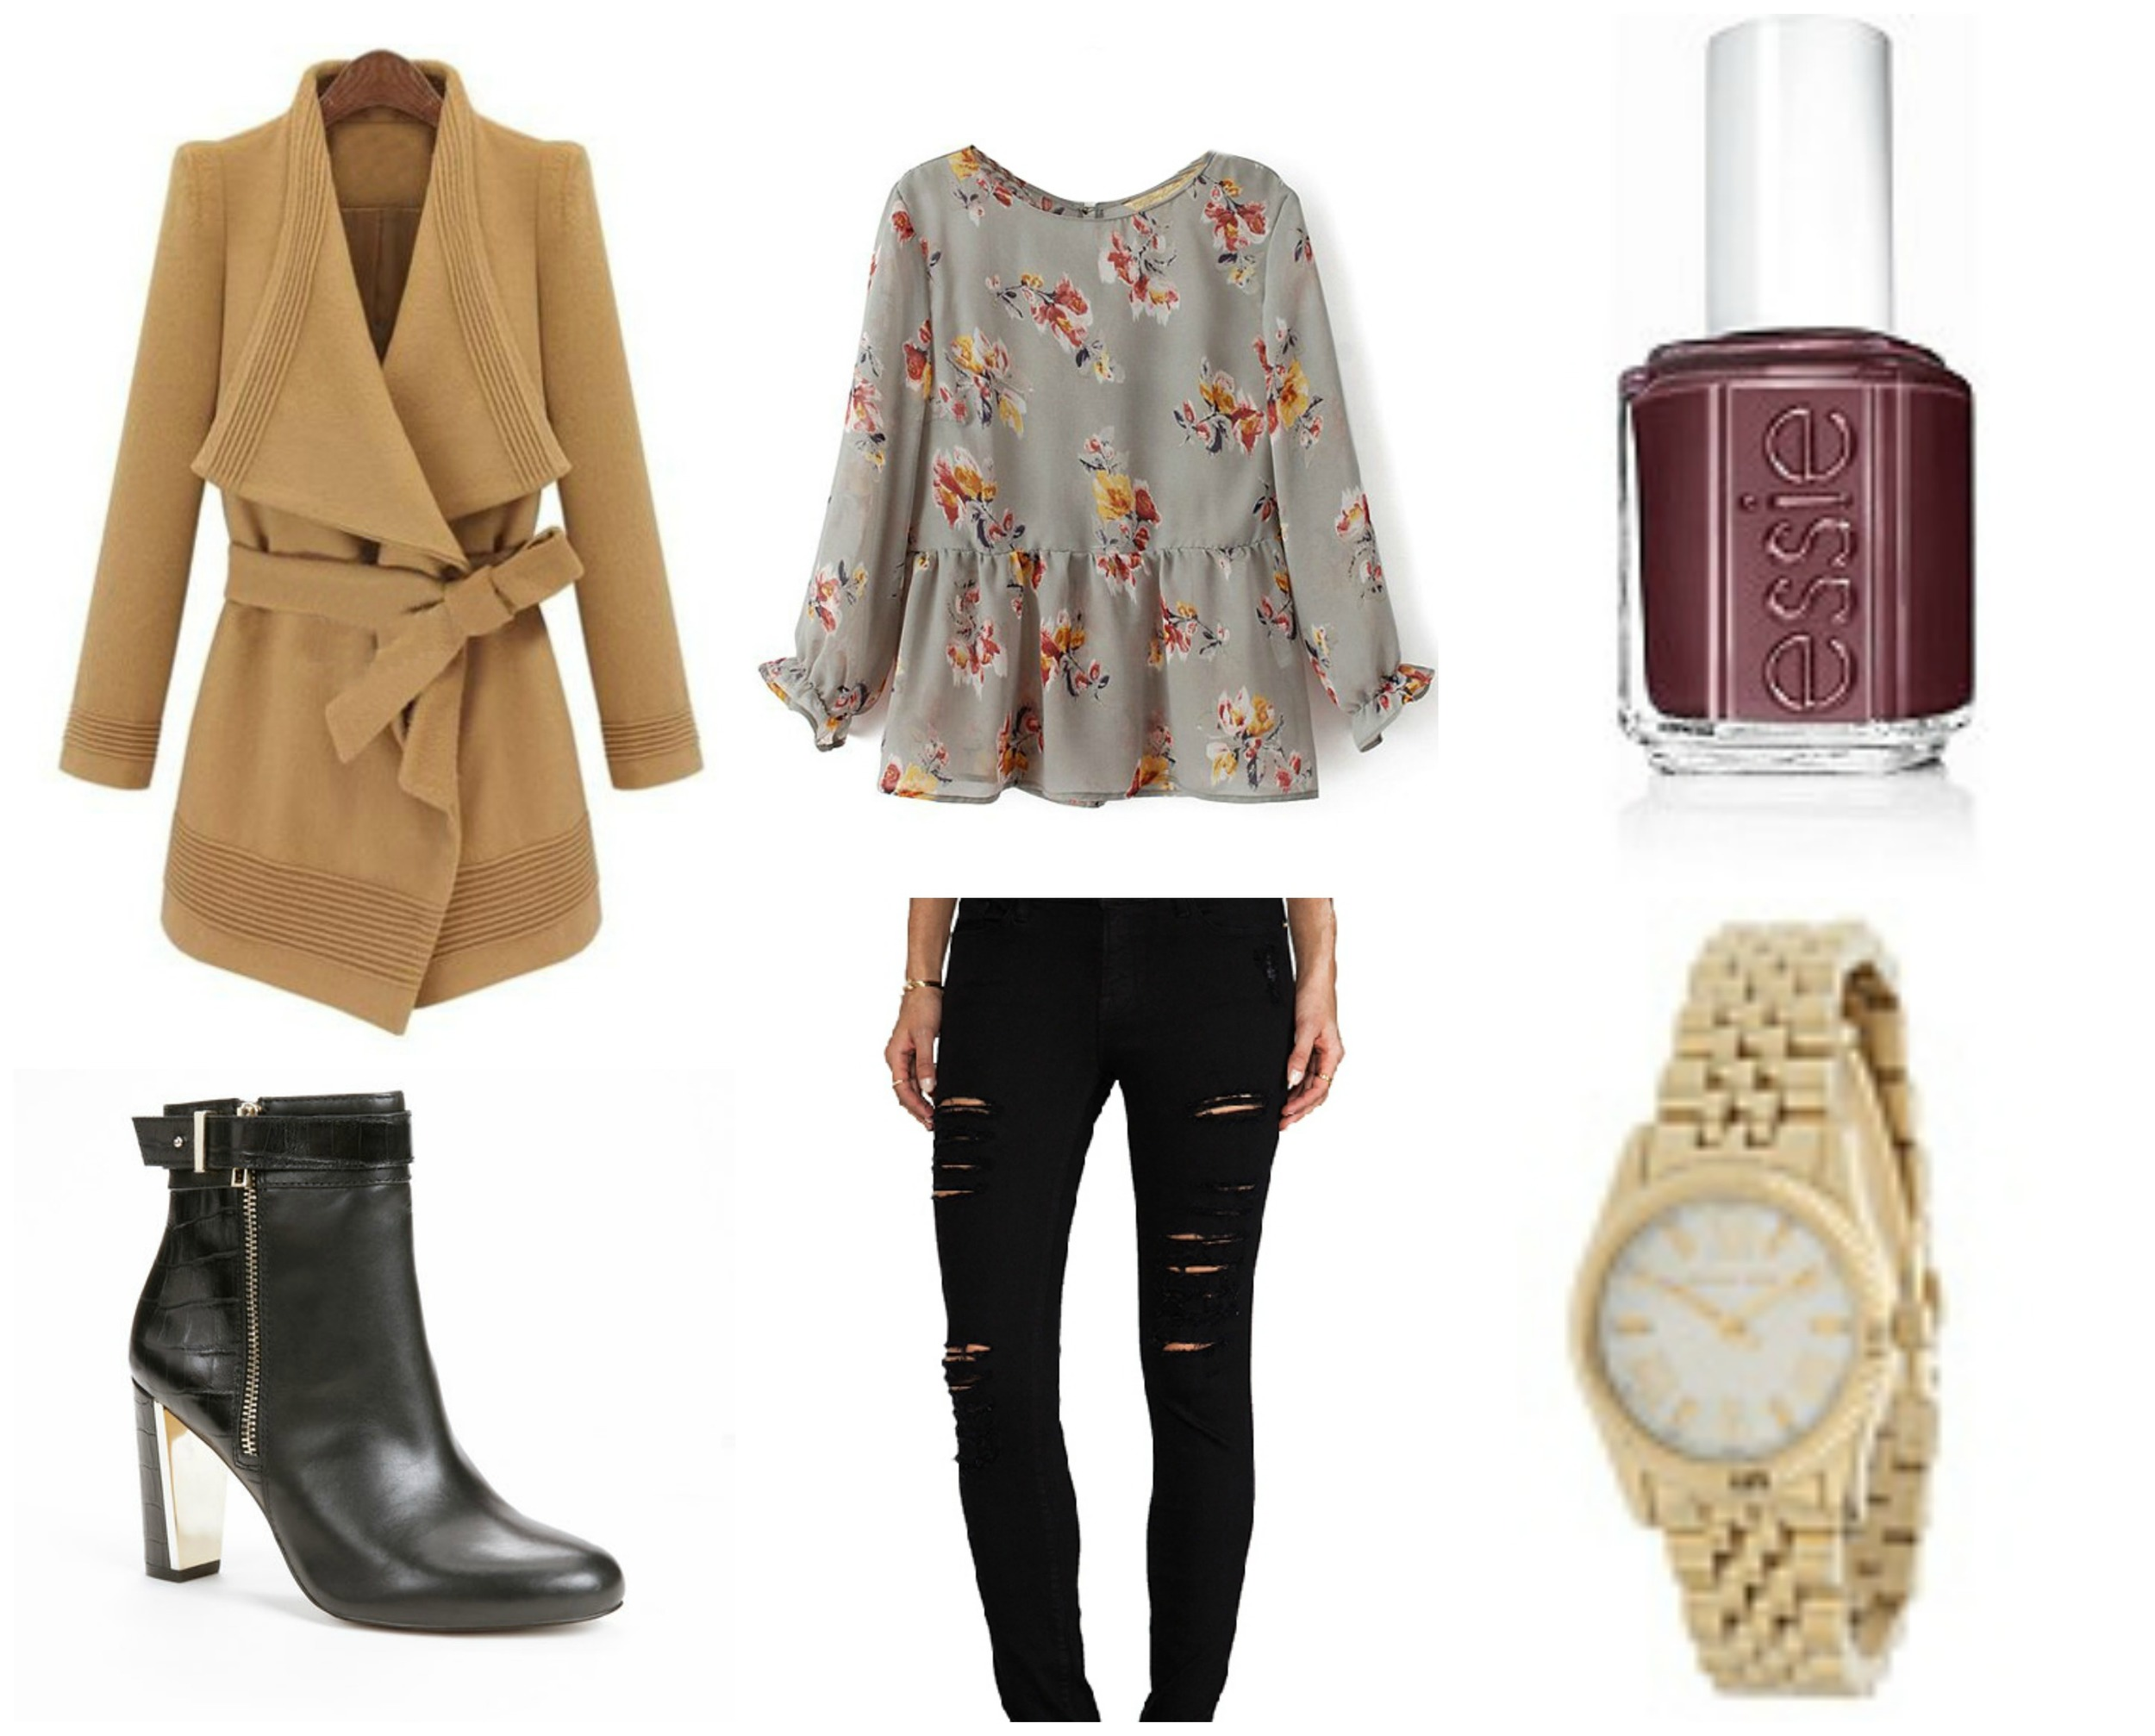 Fall outfit inspiration- Life with Lipstick On